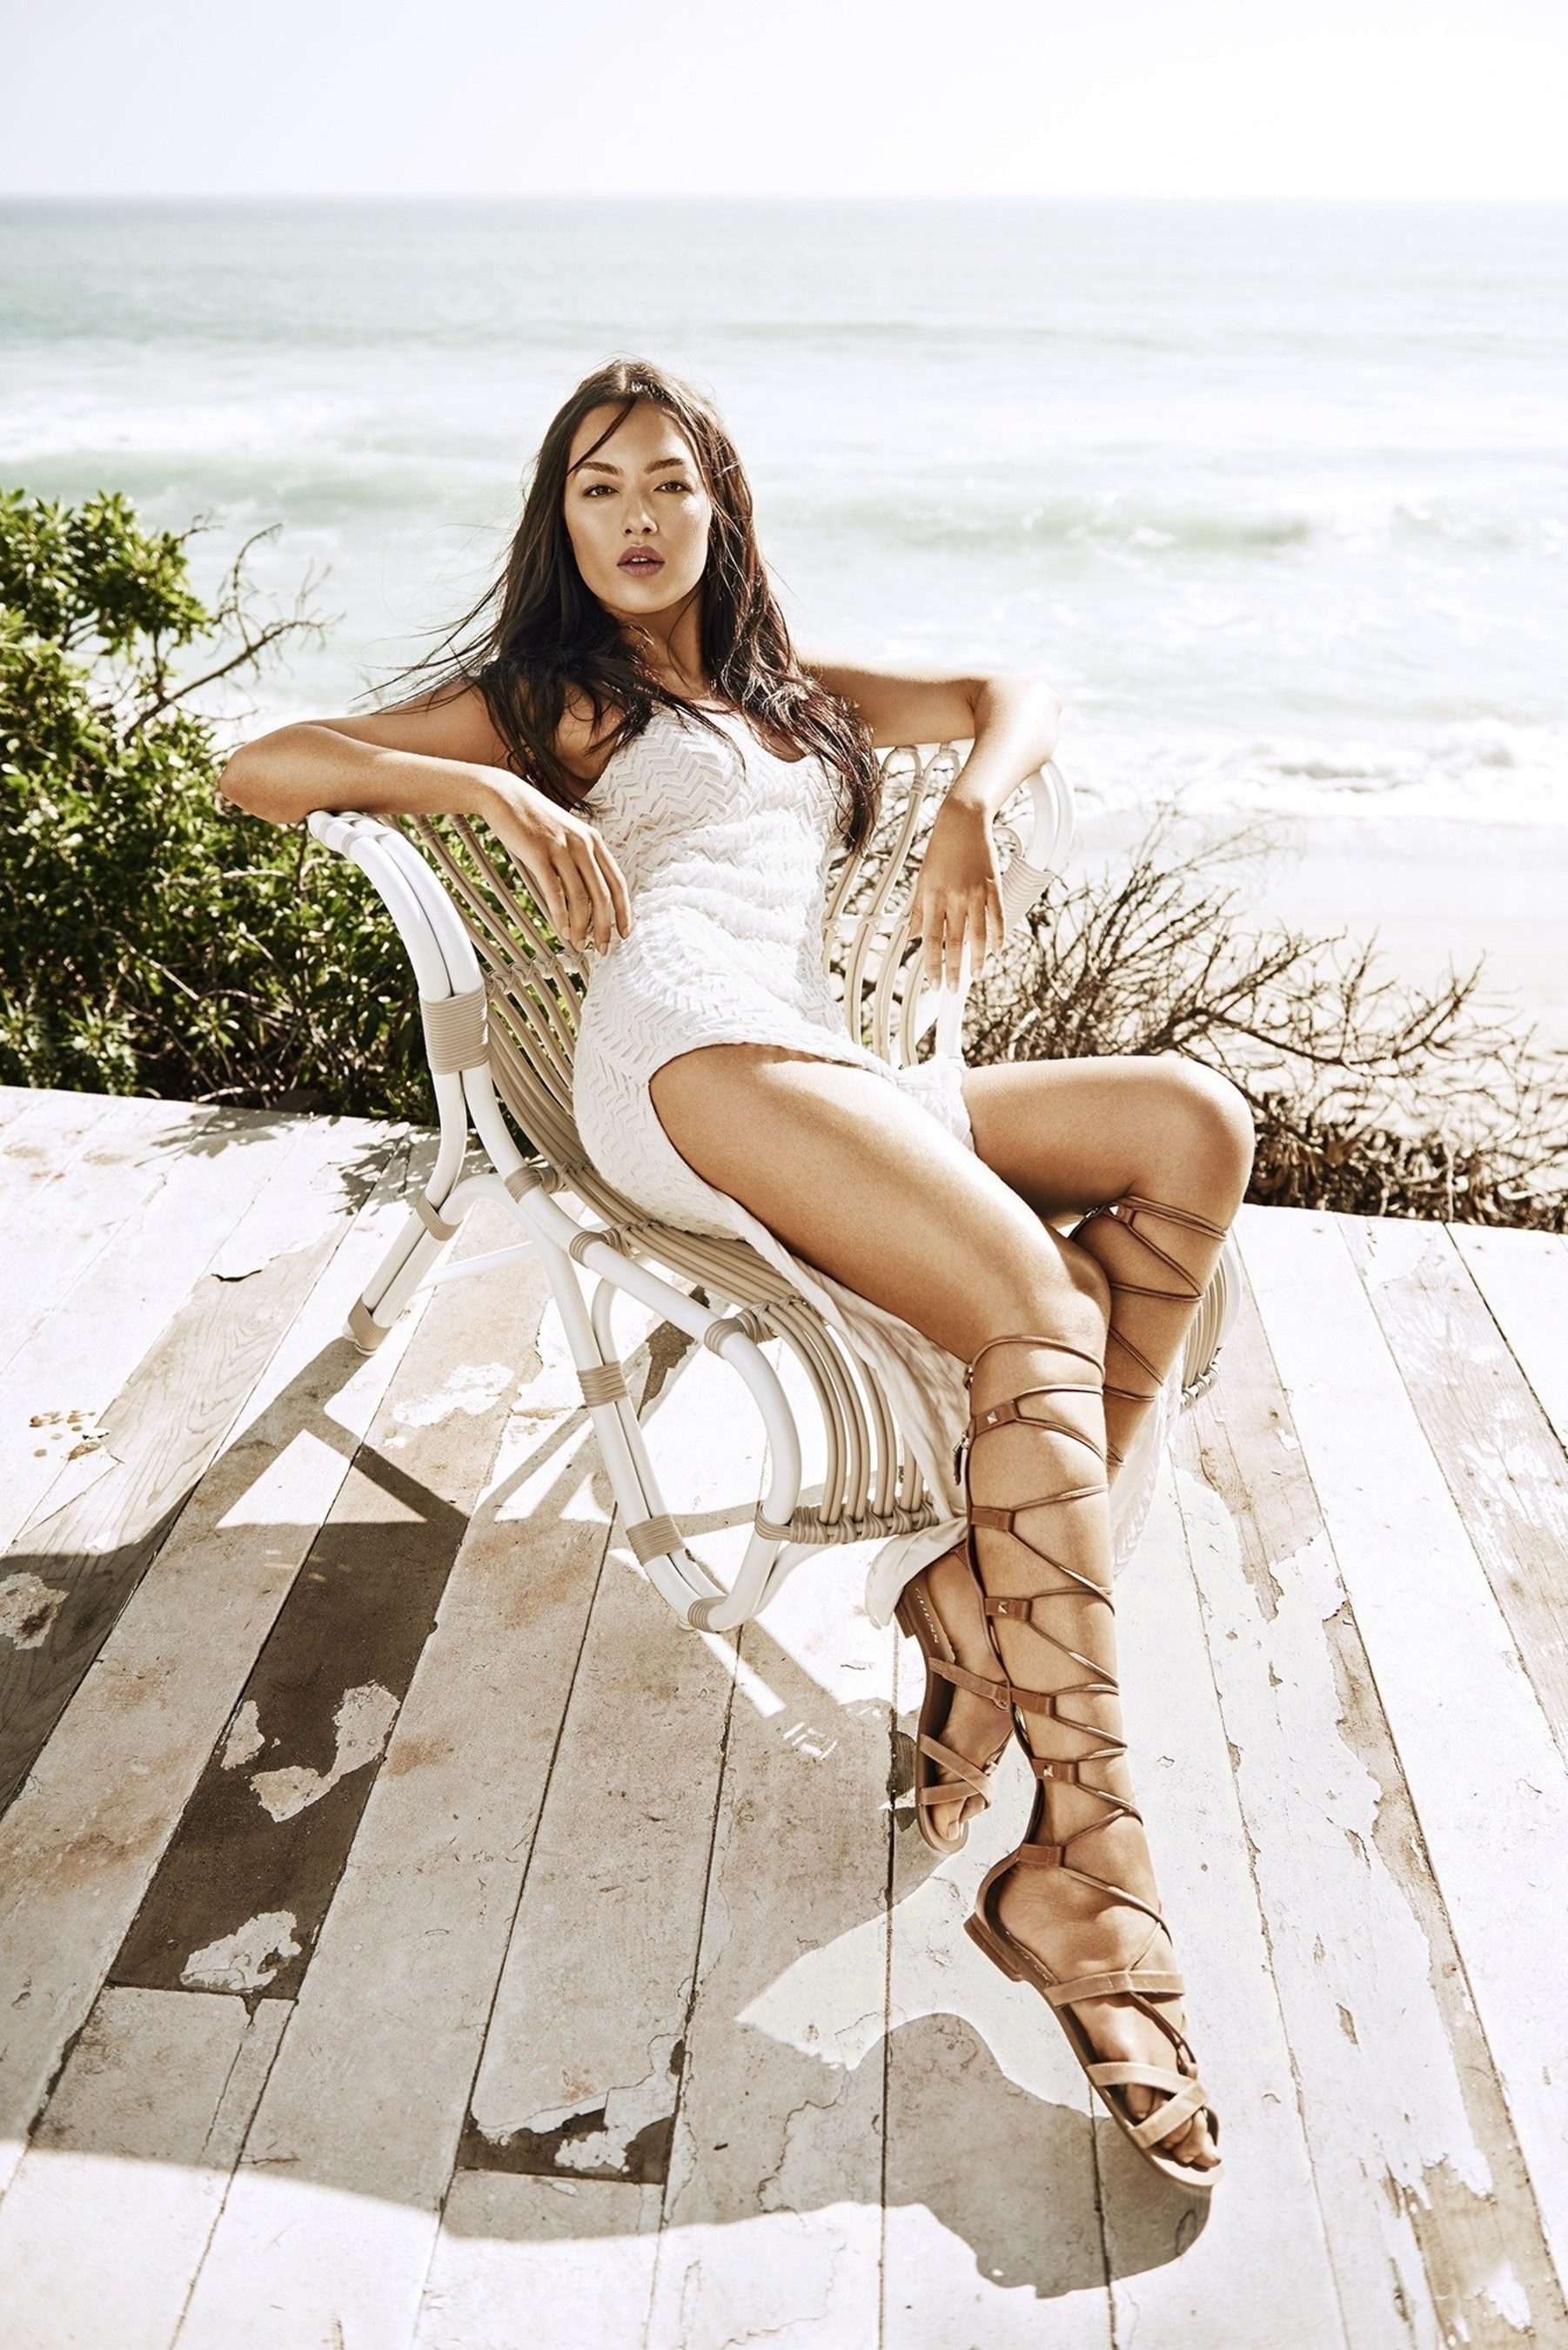 GUESS Spring/Summer 2016 Campaign